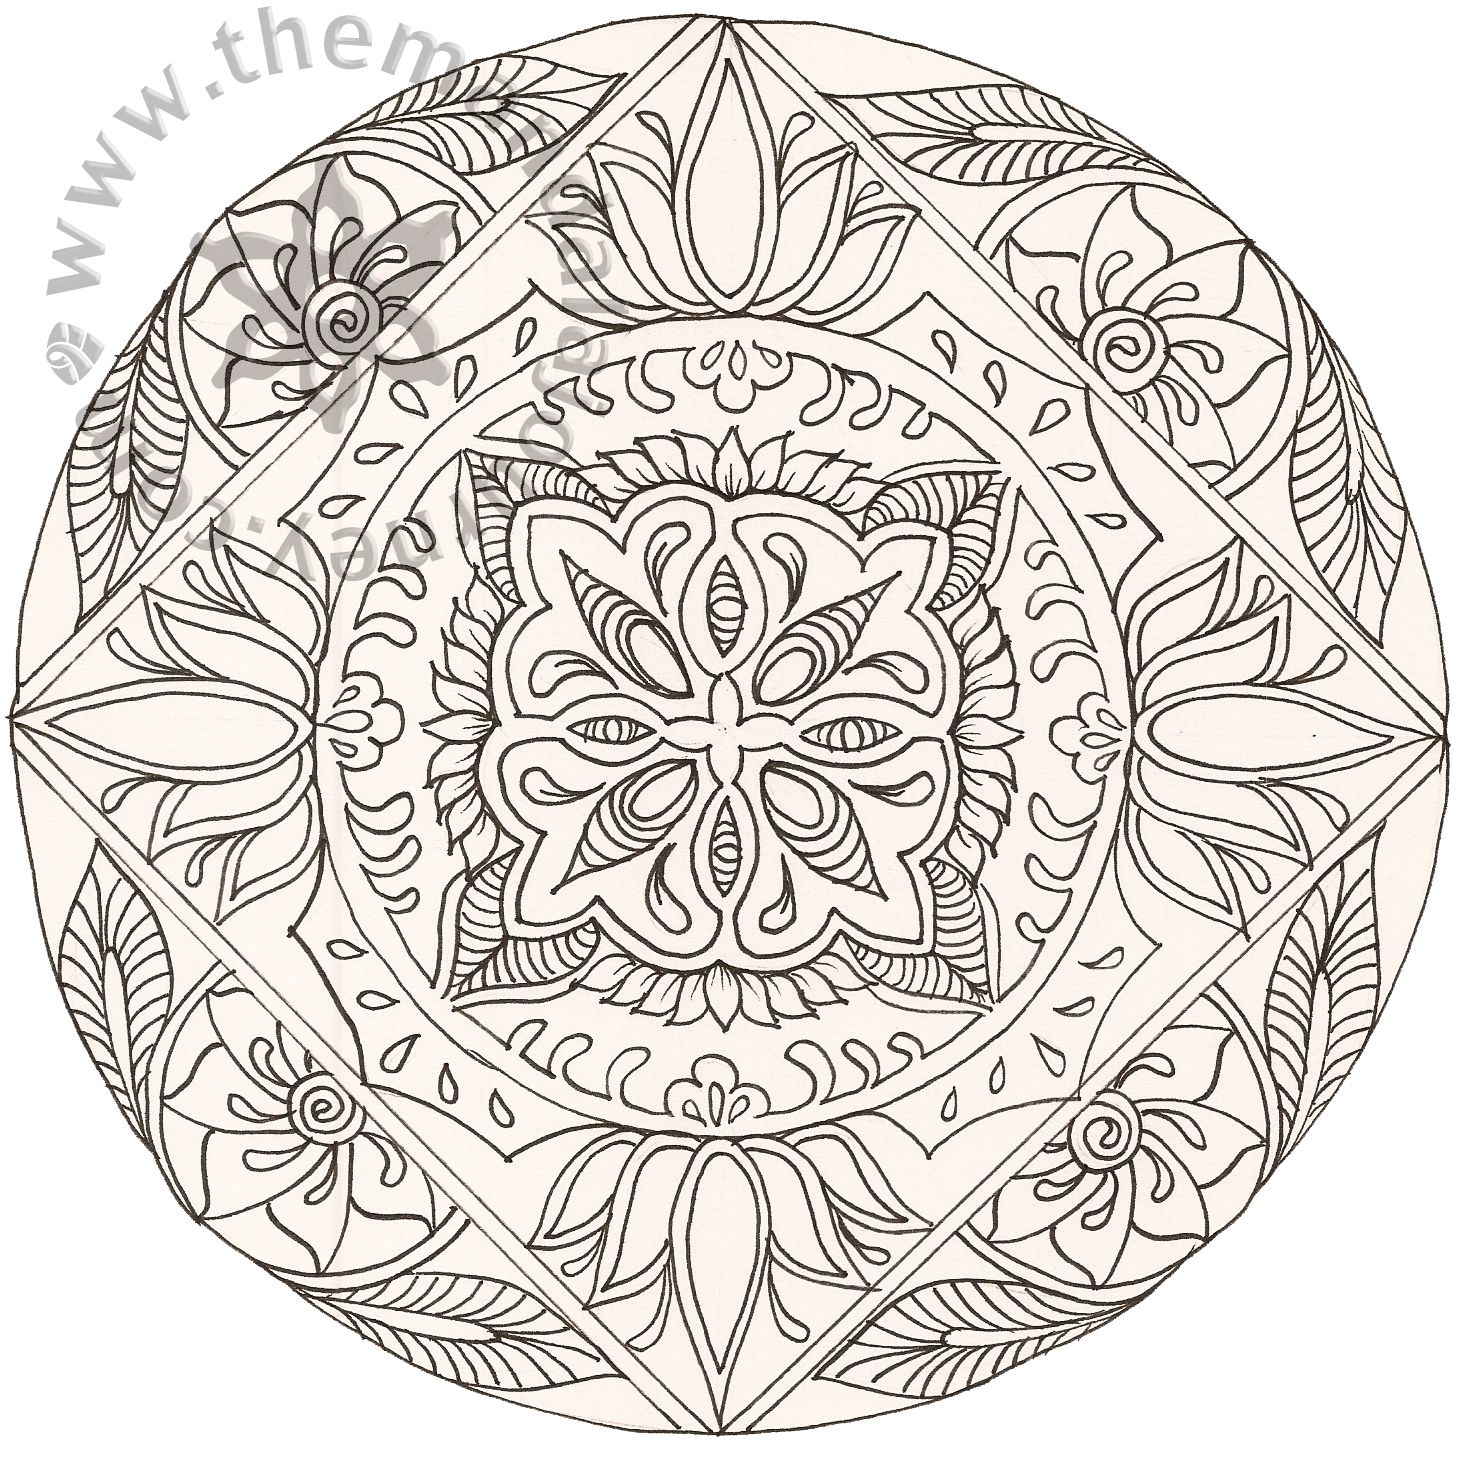 Lotus designs coloring book - Printable Art Work Art Line Mandalas And Tagged Birth Art Childbirth Coloring